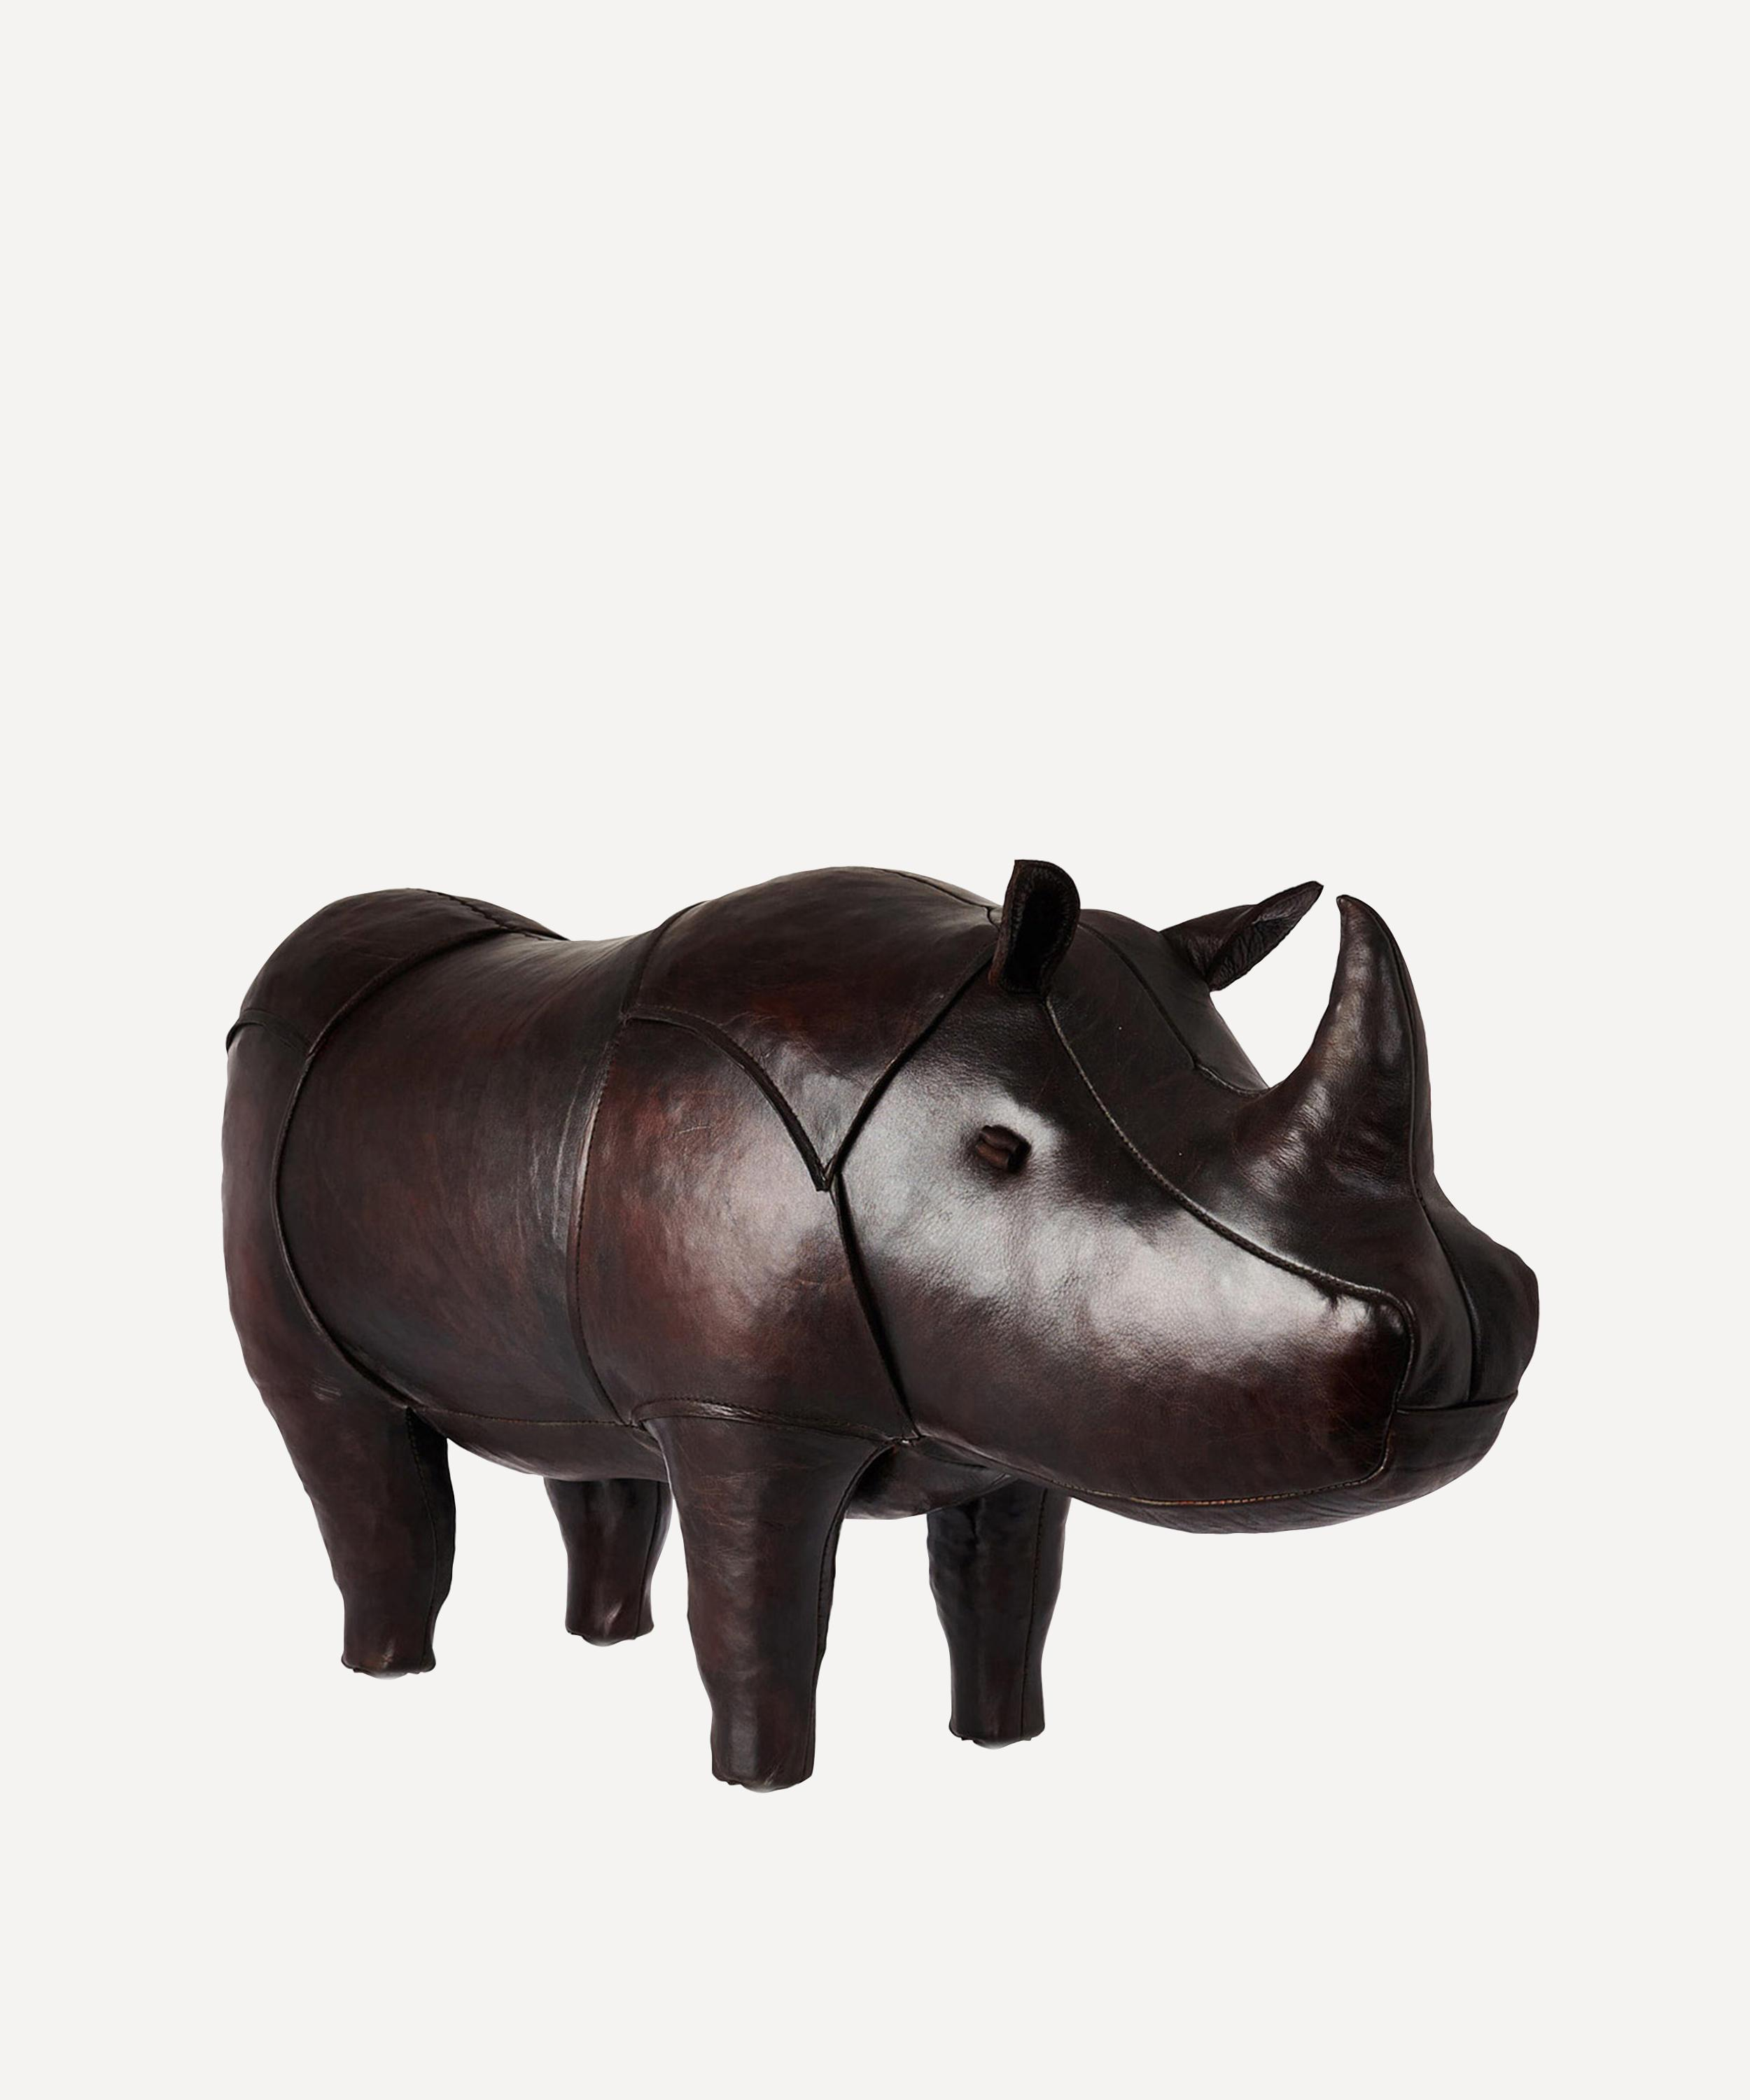 Remarkable Medium Leather Rhinoceros Ocoug Best Dining Table And Chair Ideas Images Ocougorg